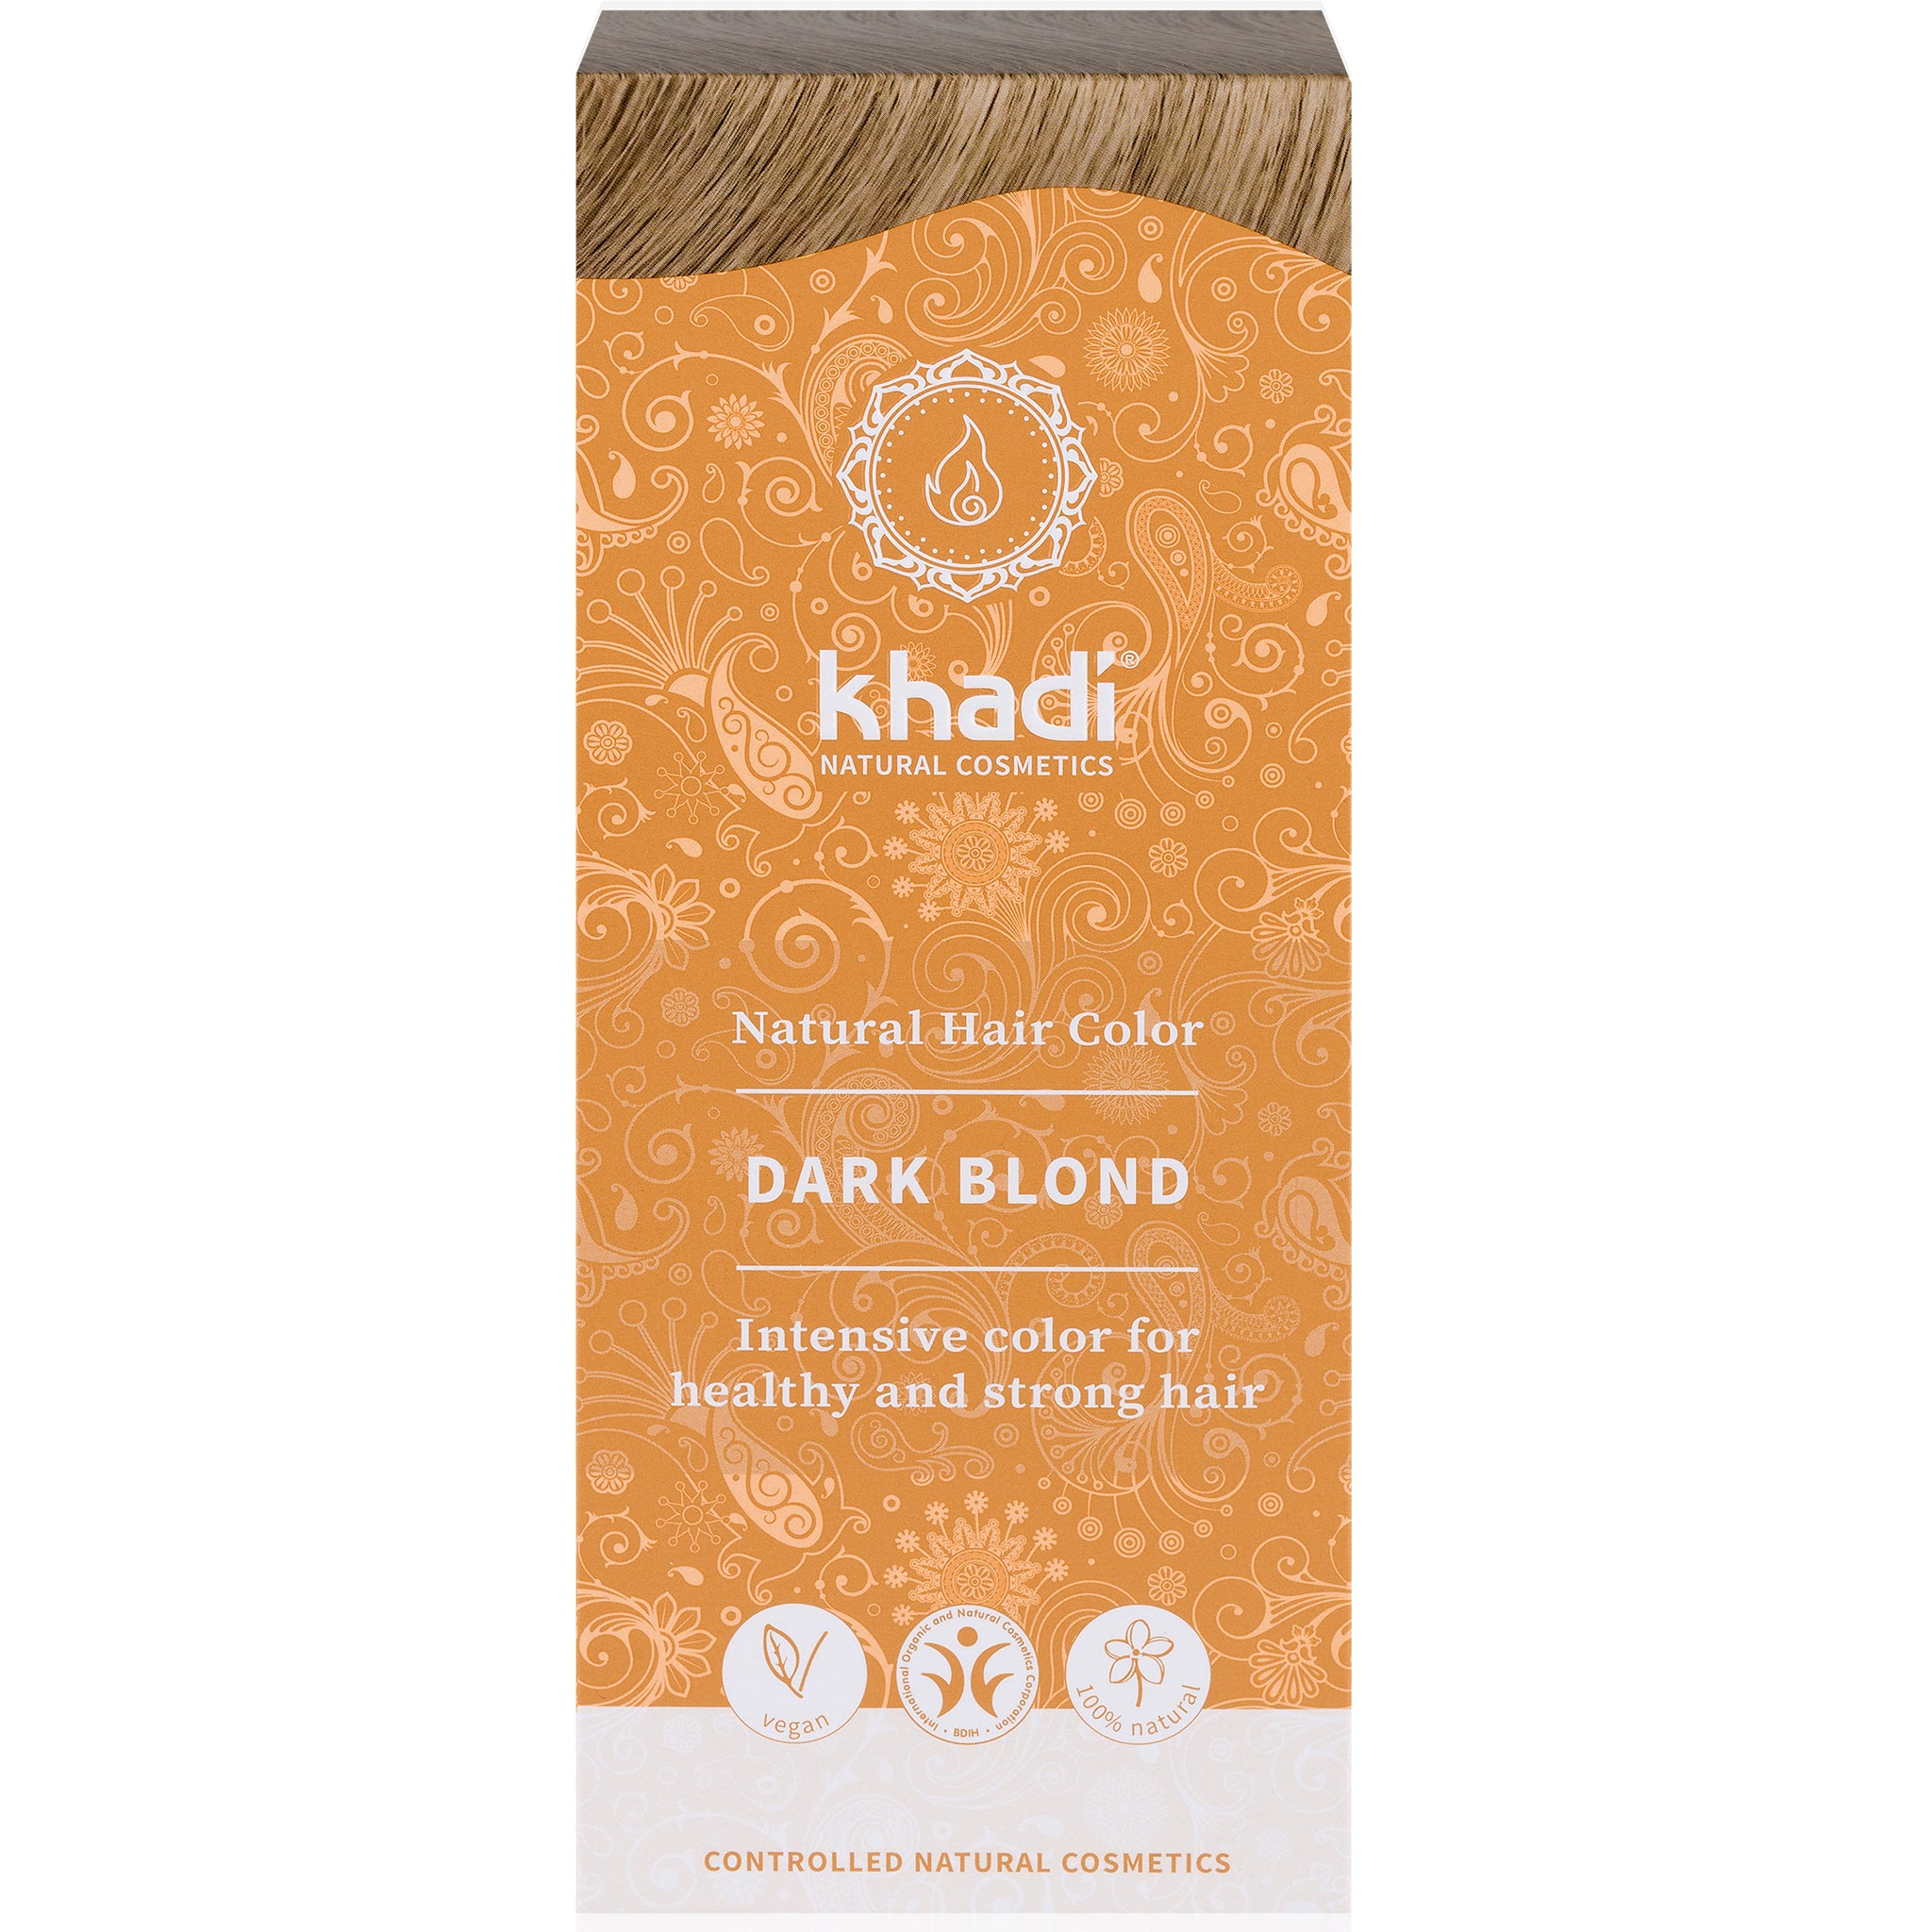 Herbal Hair Colour Blonde - Dark Blonde